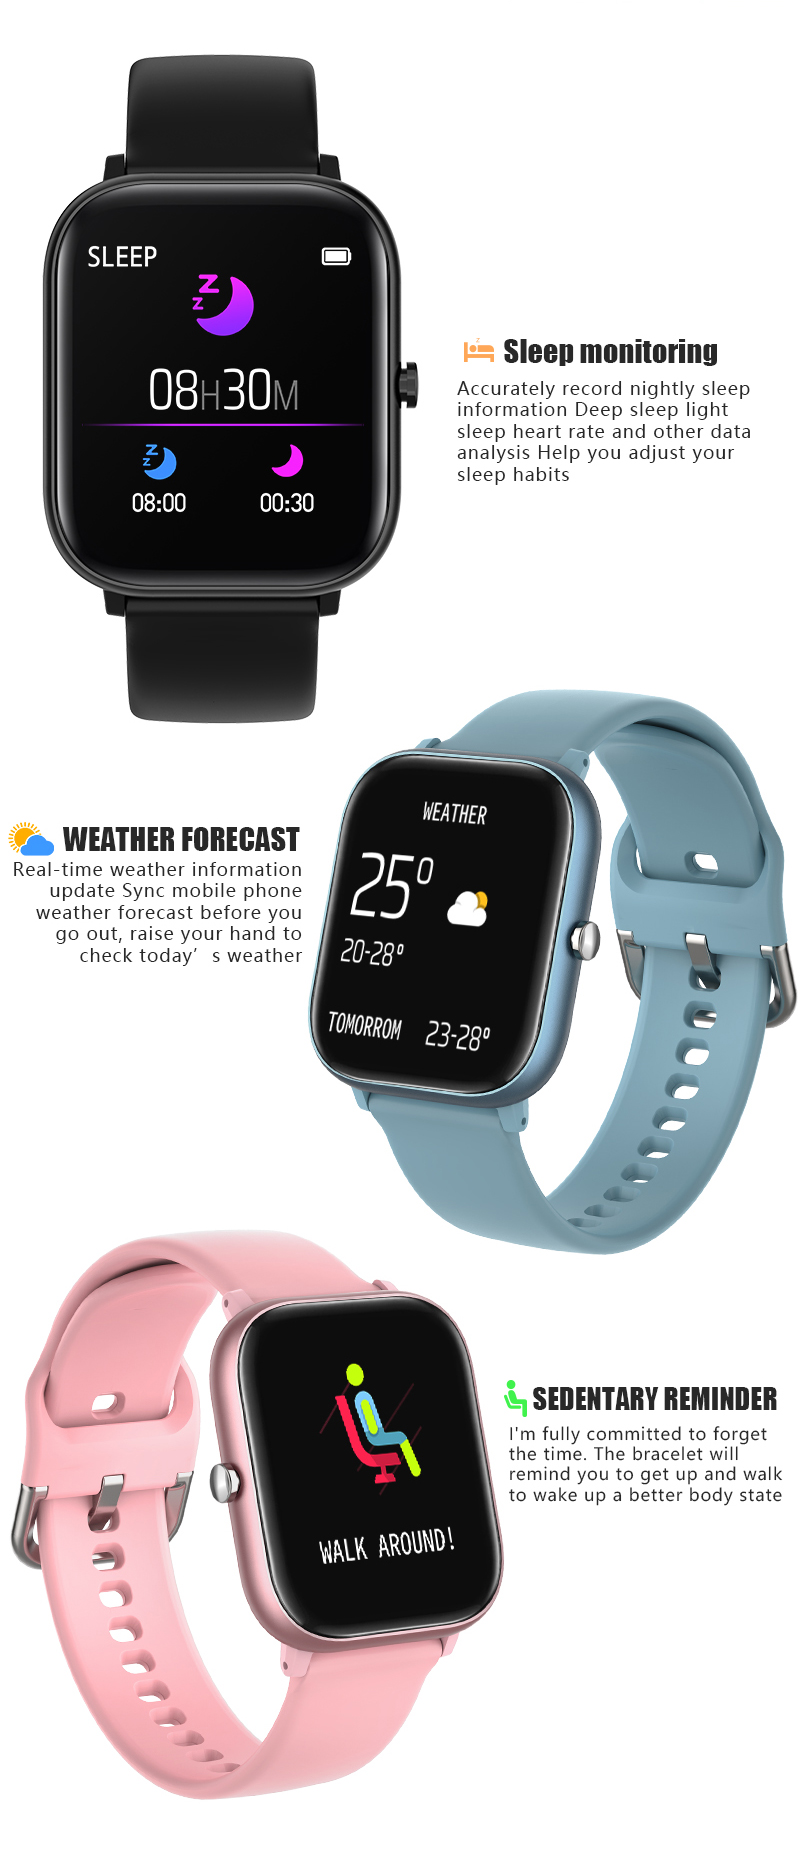 Hde80f7dd01d84ca8b0c6e1f8608d0e25W CYUC P20 1.4HD  smartatches  For IOS & Android